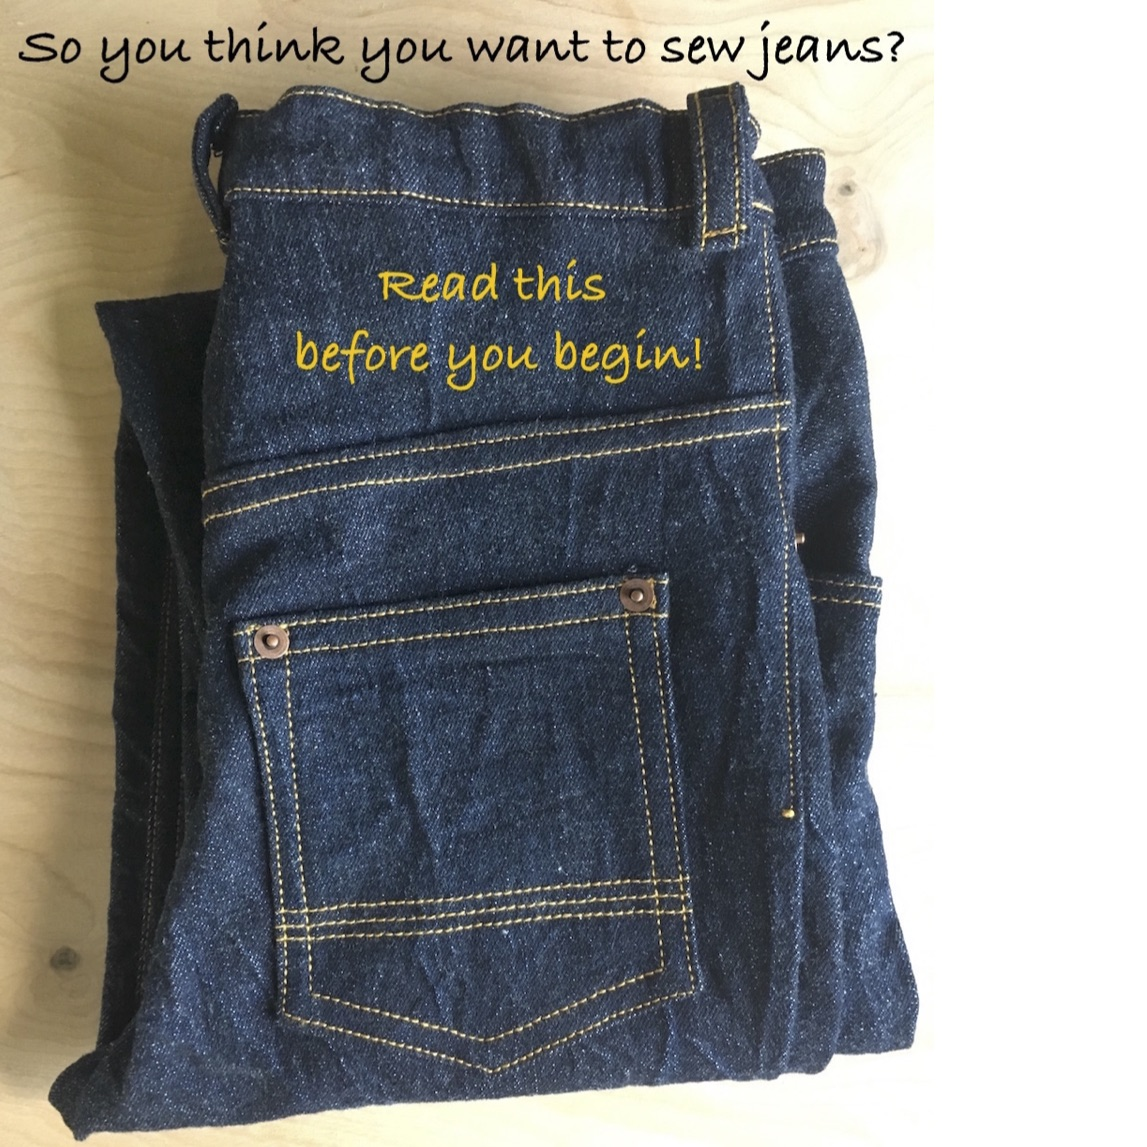 So you think you want to sew jeans?